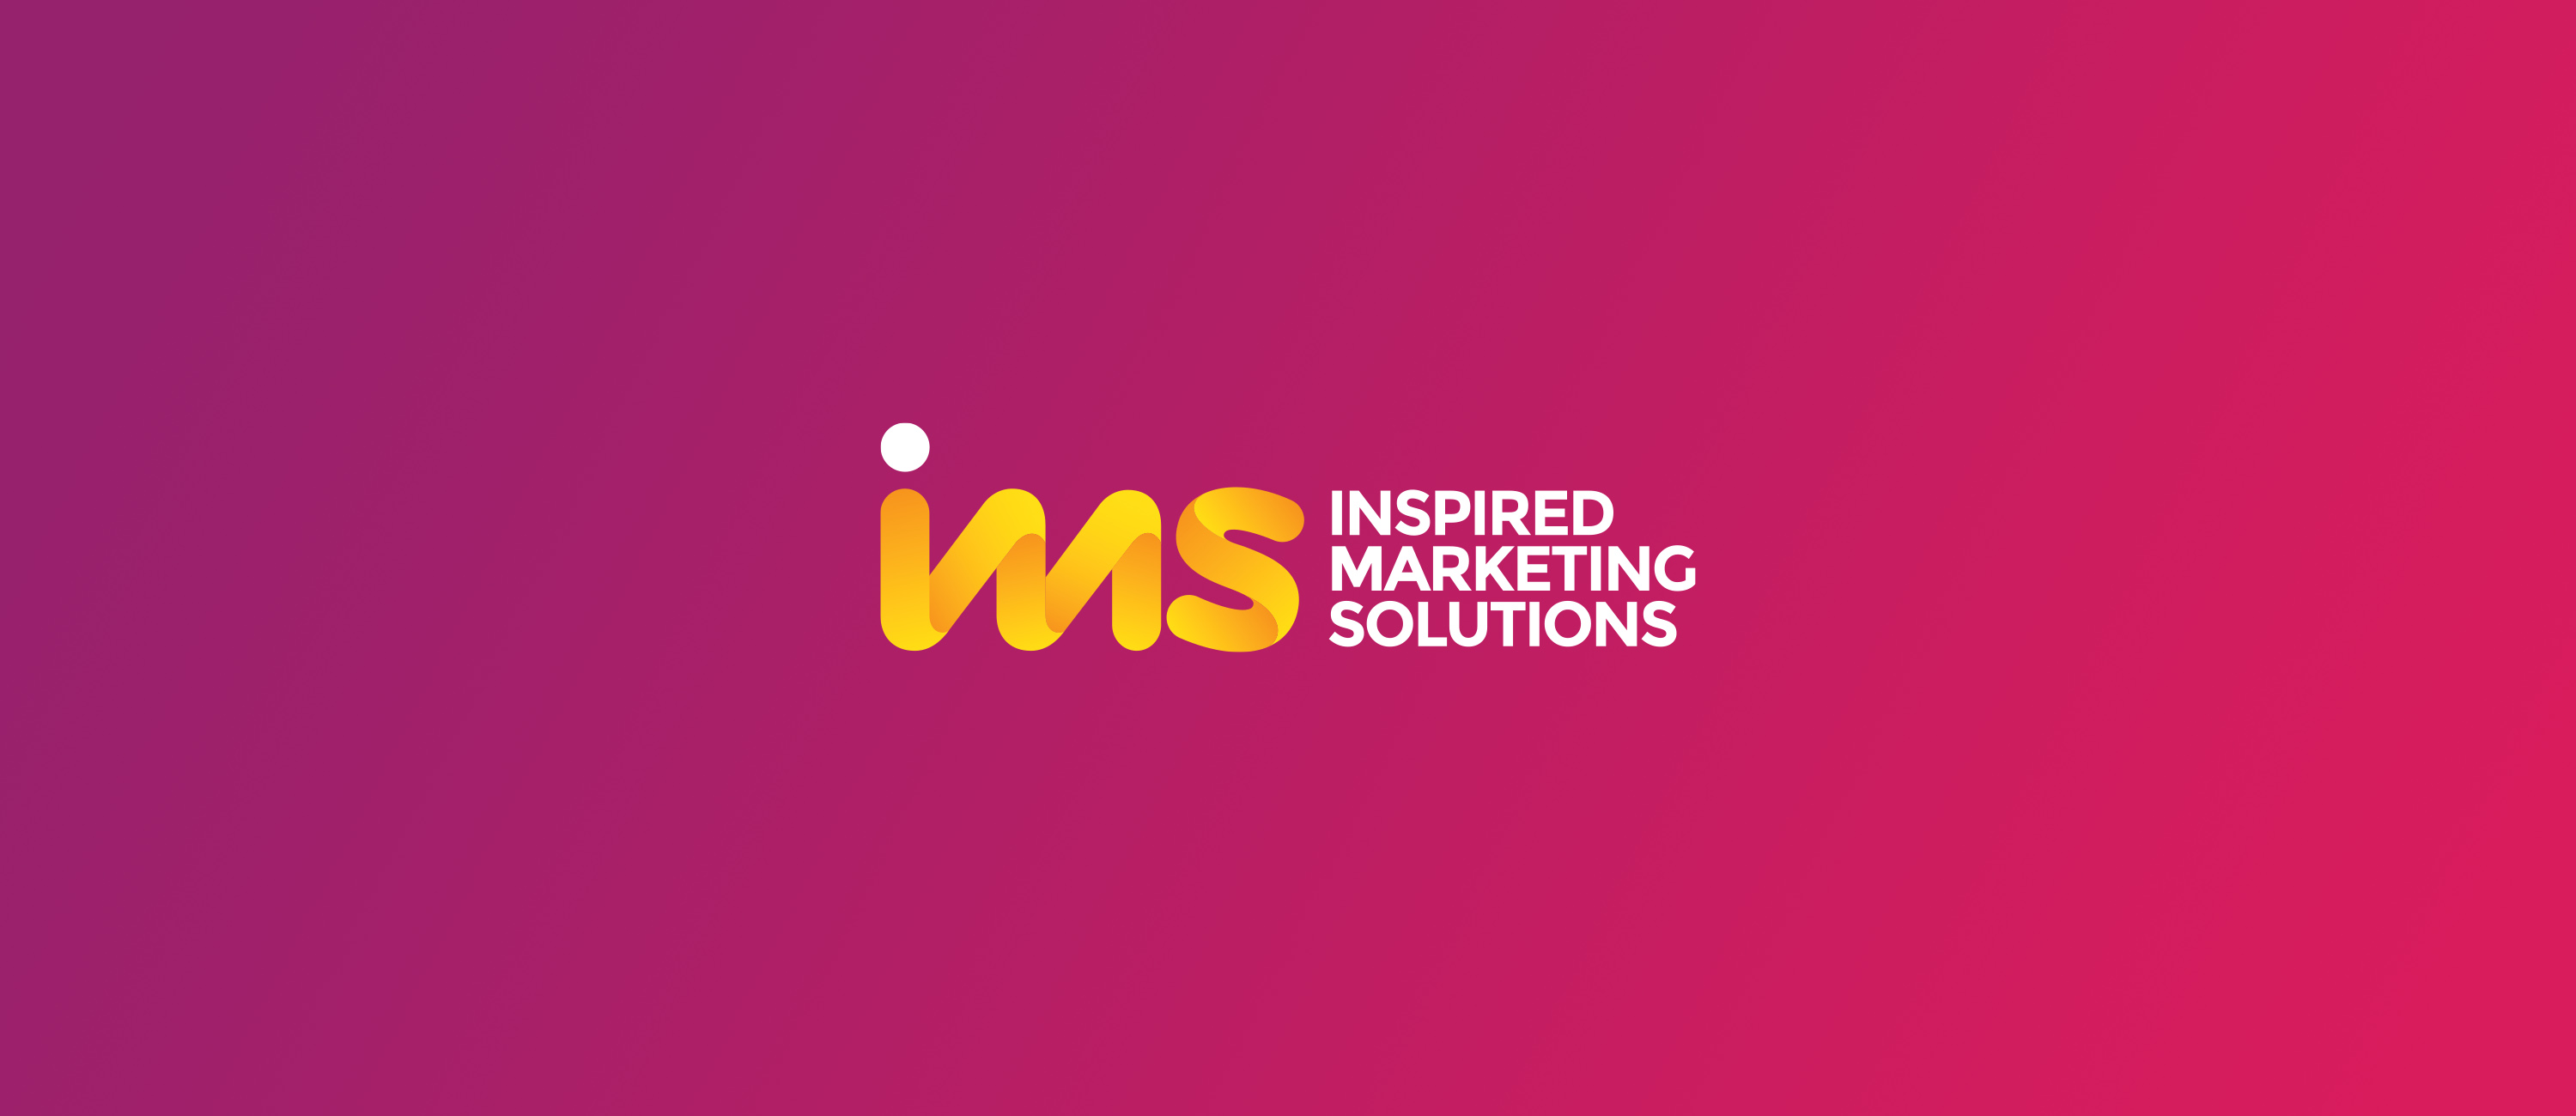 Inspired Marketing Solutions branding